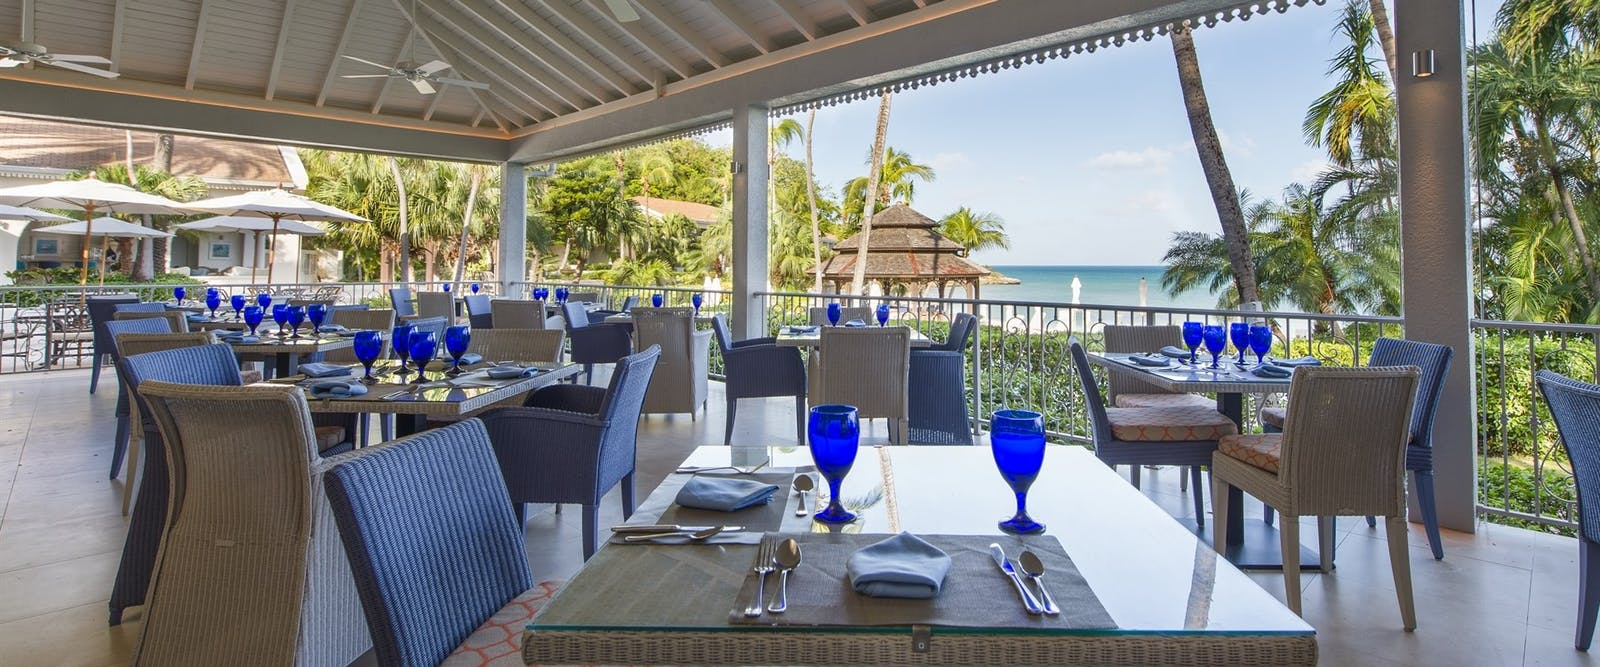 Palm Restaurant at Blue Waters, Antigua